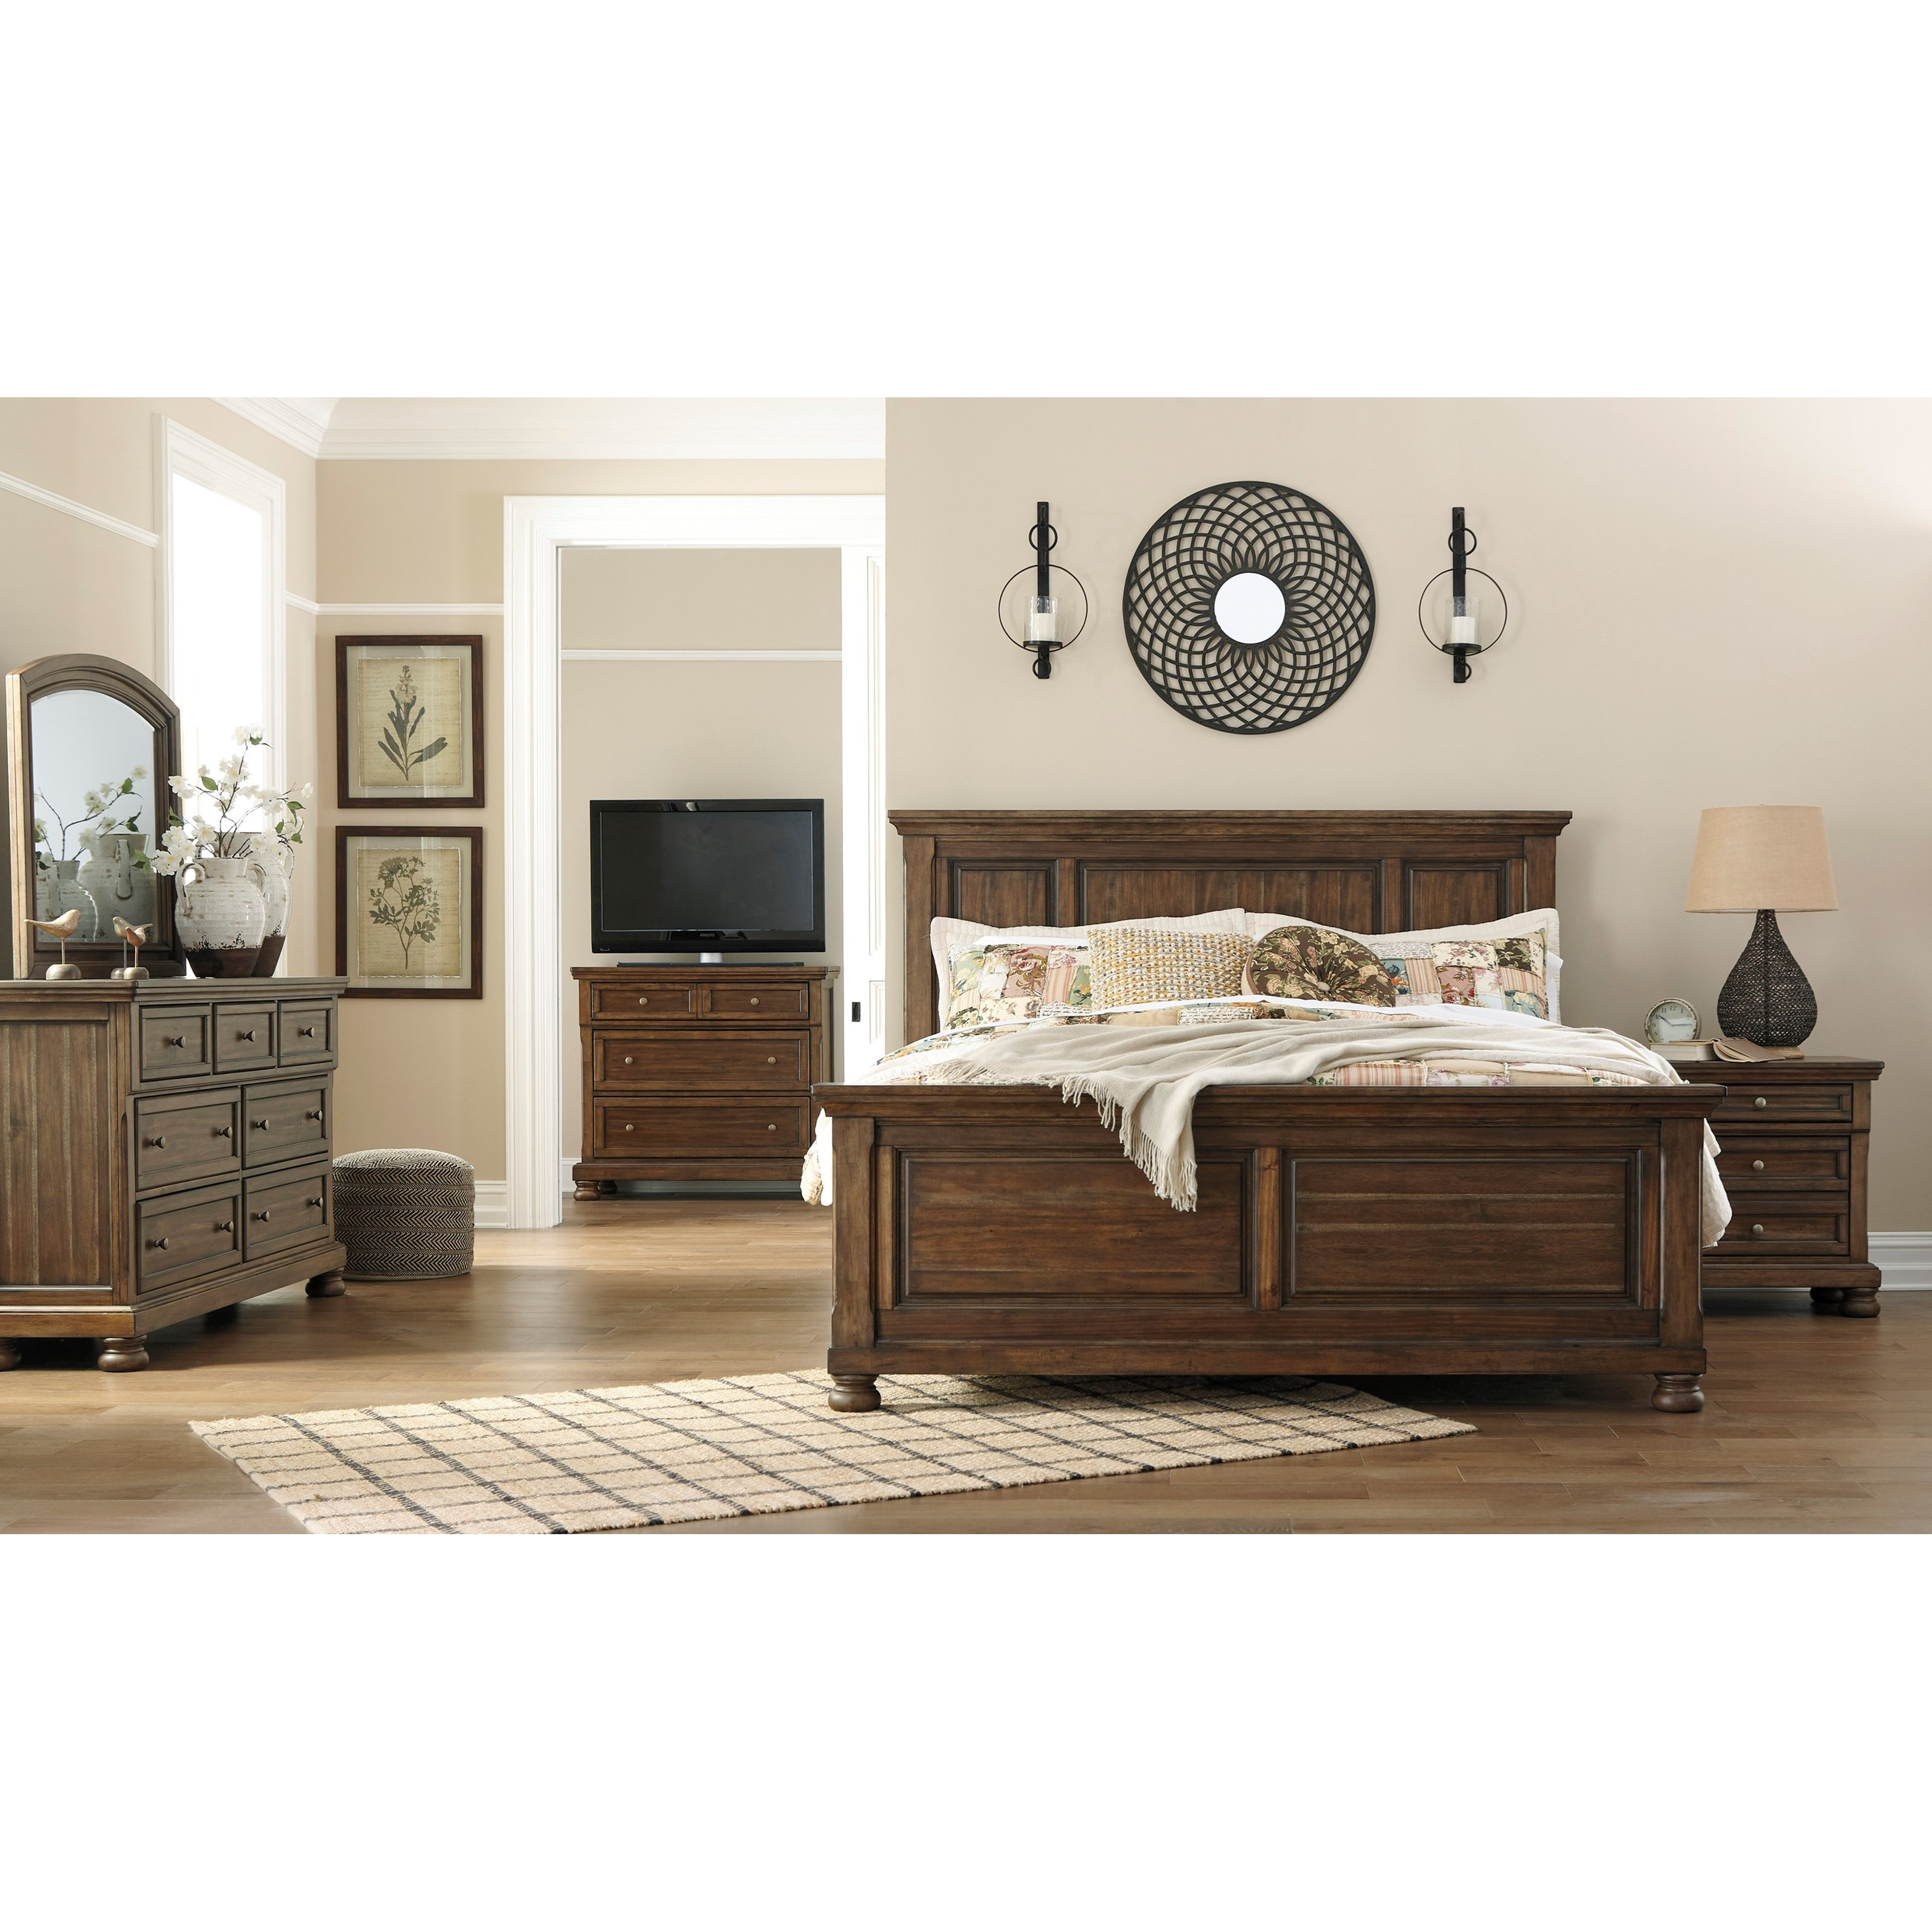 Signature design by ashley flynnter king bedroom group for Bedroom furniture groups